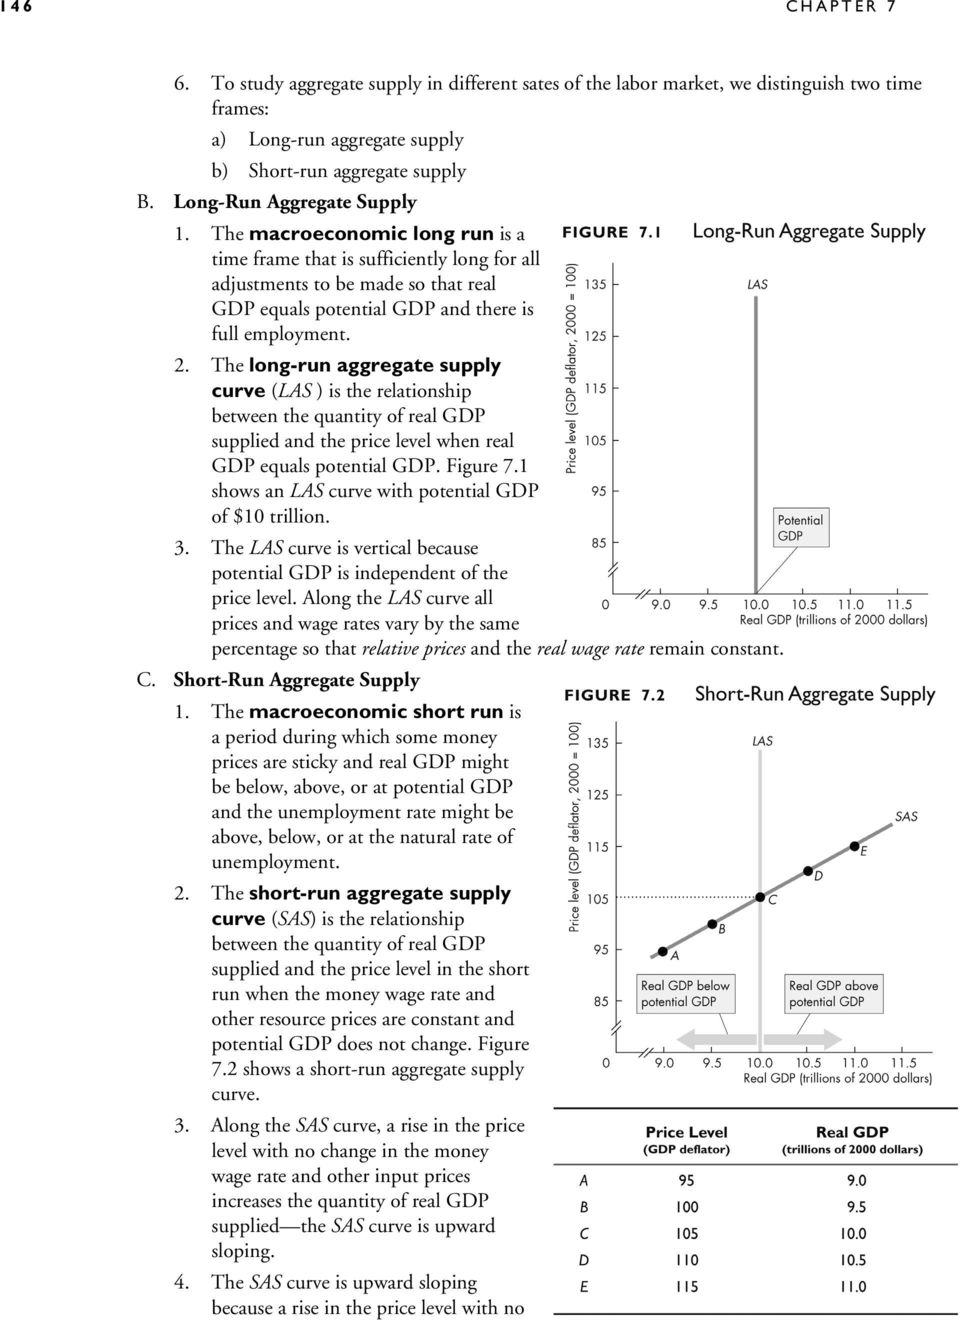 The long-run aggregate supply curve (LAS ) is the relationship between the quantity of real GDP supplied and the price level when real GDP equals potential GDP. Figure 7.